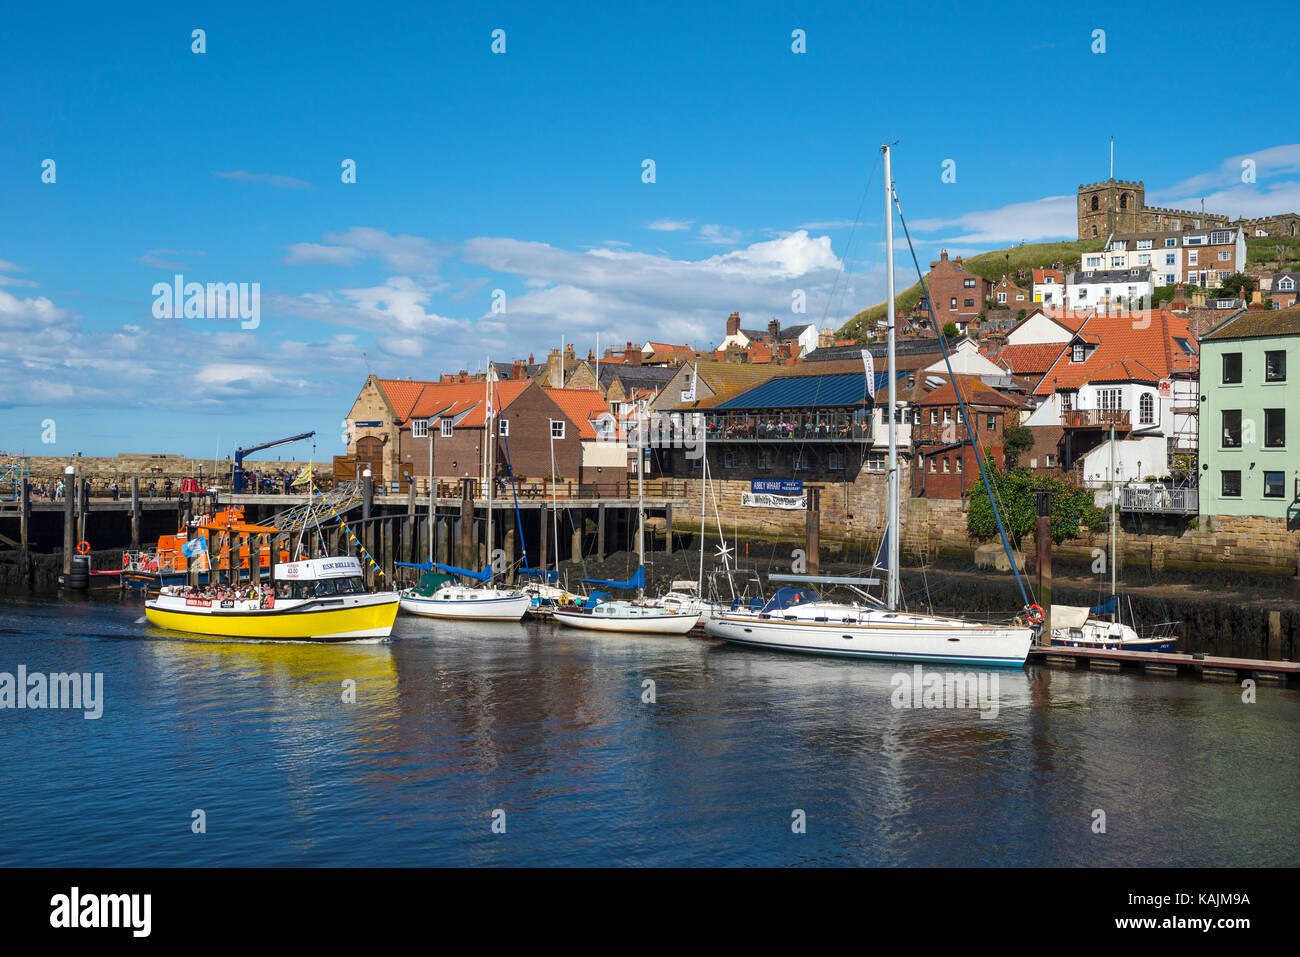 Whitby Harbour and River Esk, Whitby, North Yorkshire - Stock Image